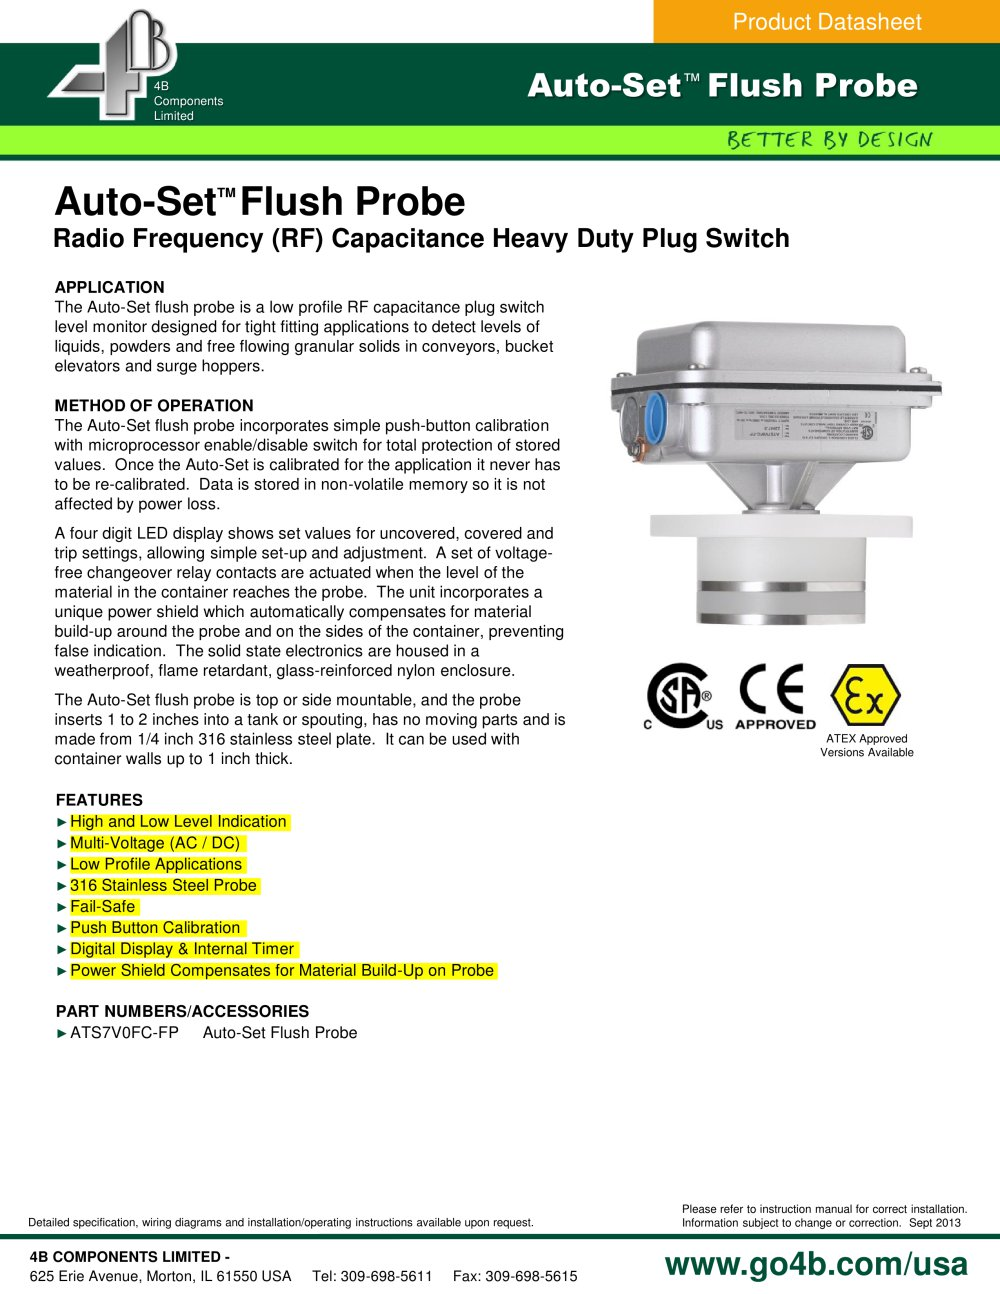 Auto Set Flush Probe Radio Frequency Rf Capacitance Plug Switch Receptacle Wiring Diagram 1 2 Pages